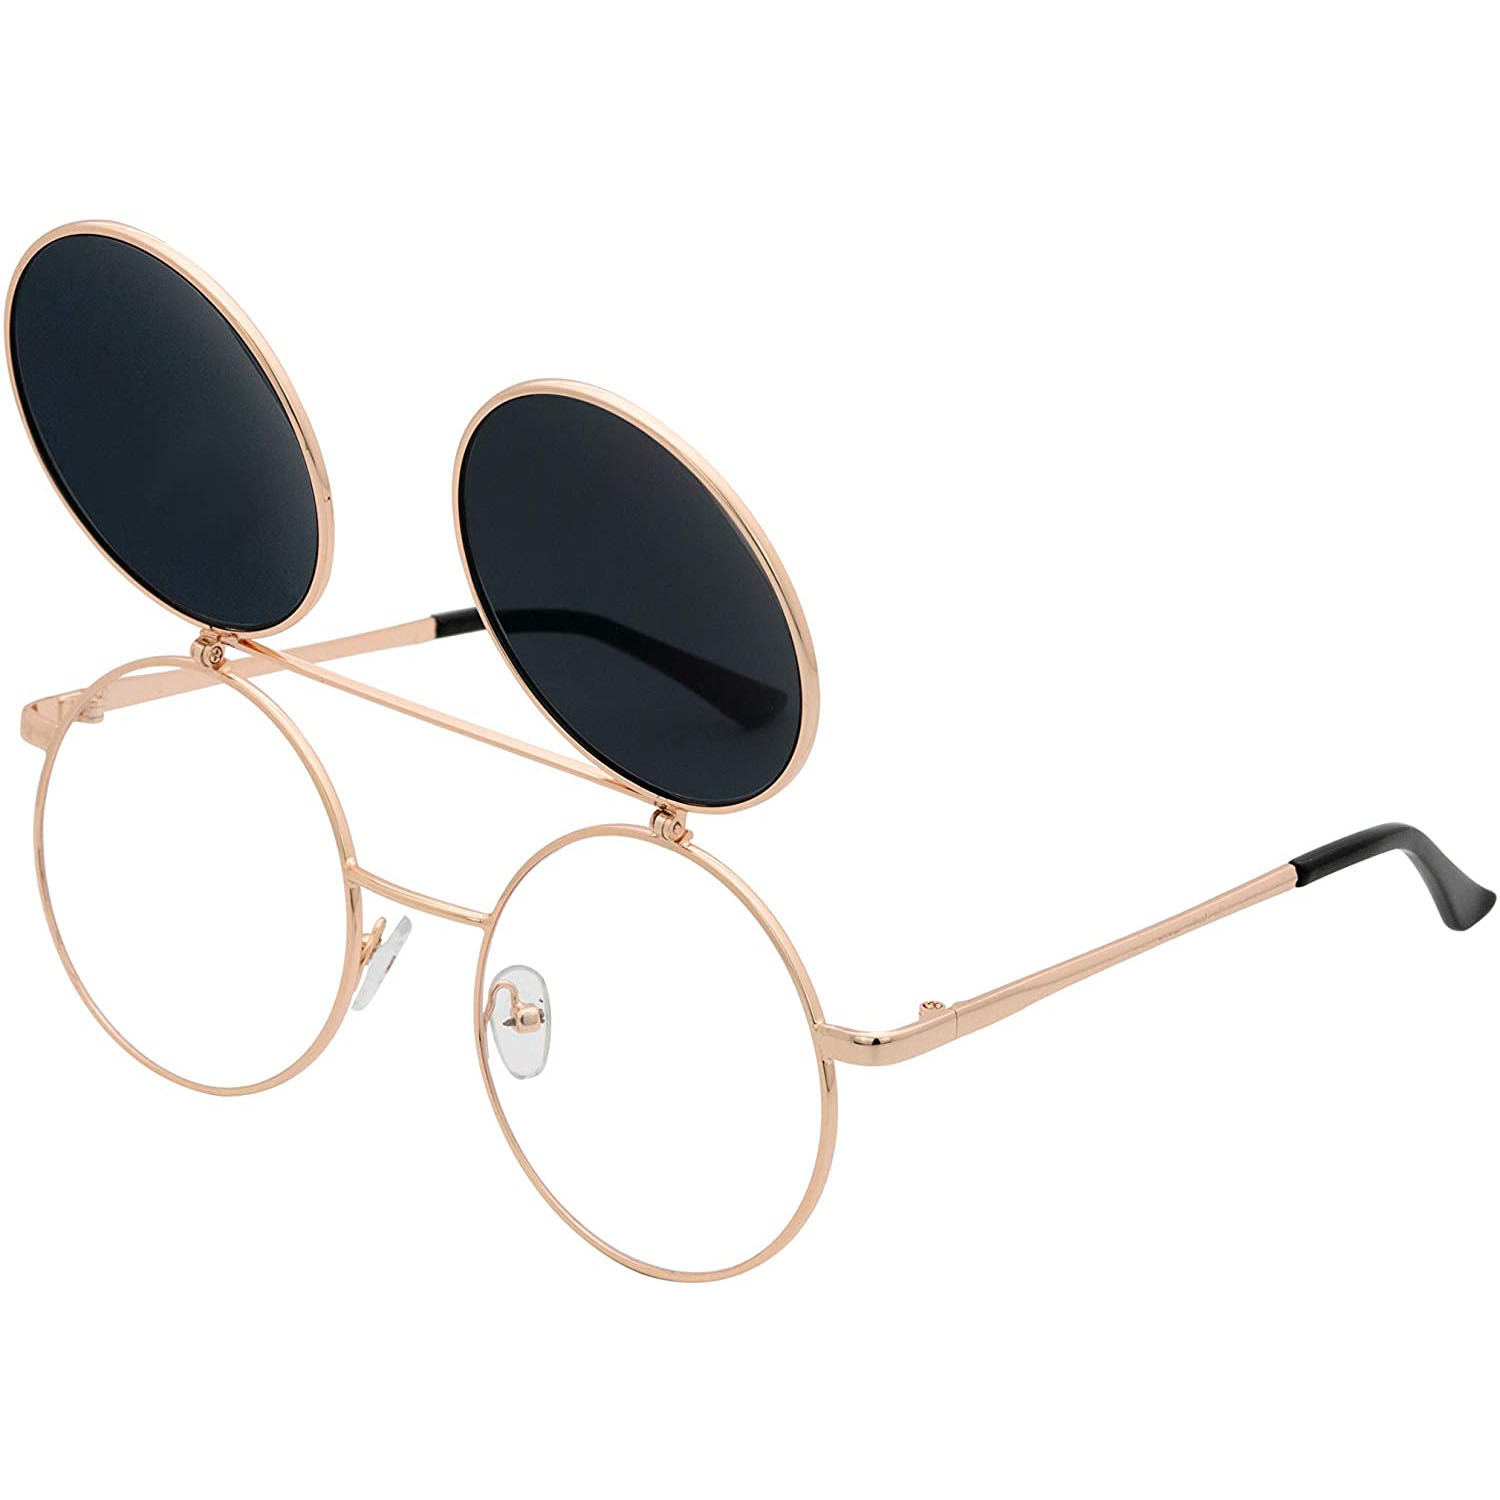 J&L Glasses Retro Flip-Up Sunglasses